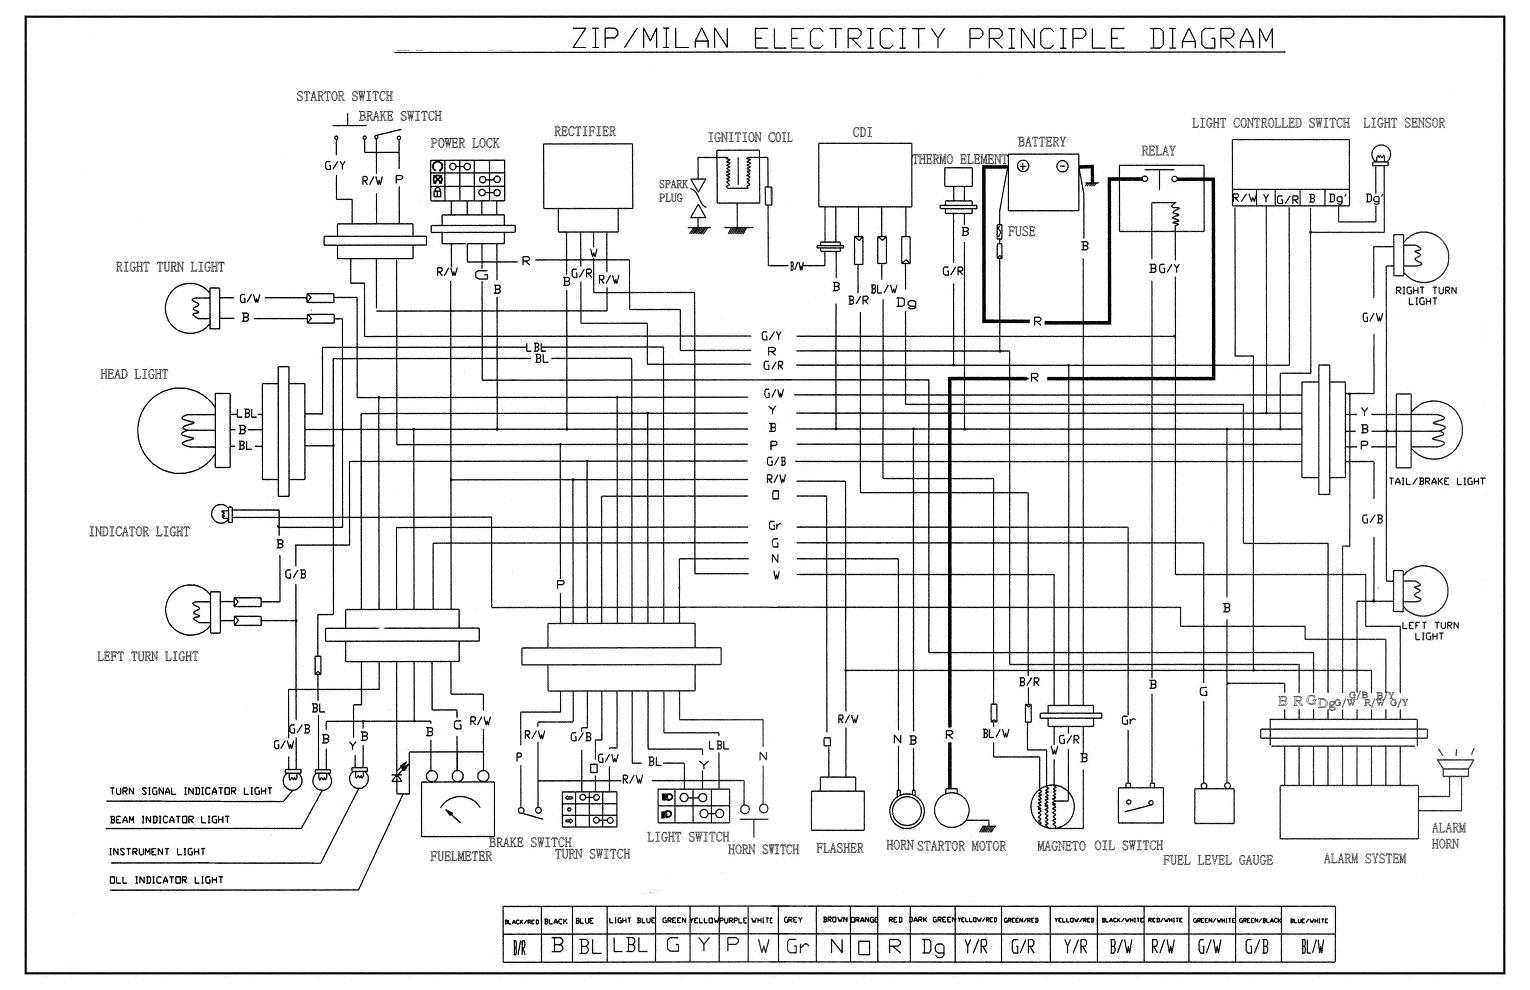 Saab Wiring Diagram Amazing. Saab. Auto Wiring Diagram